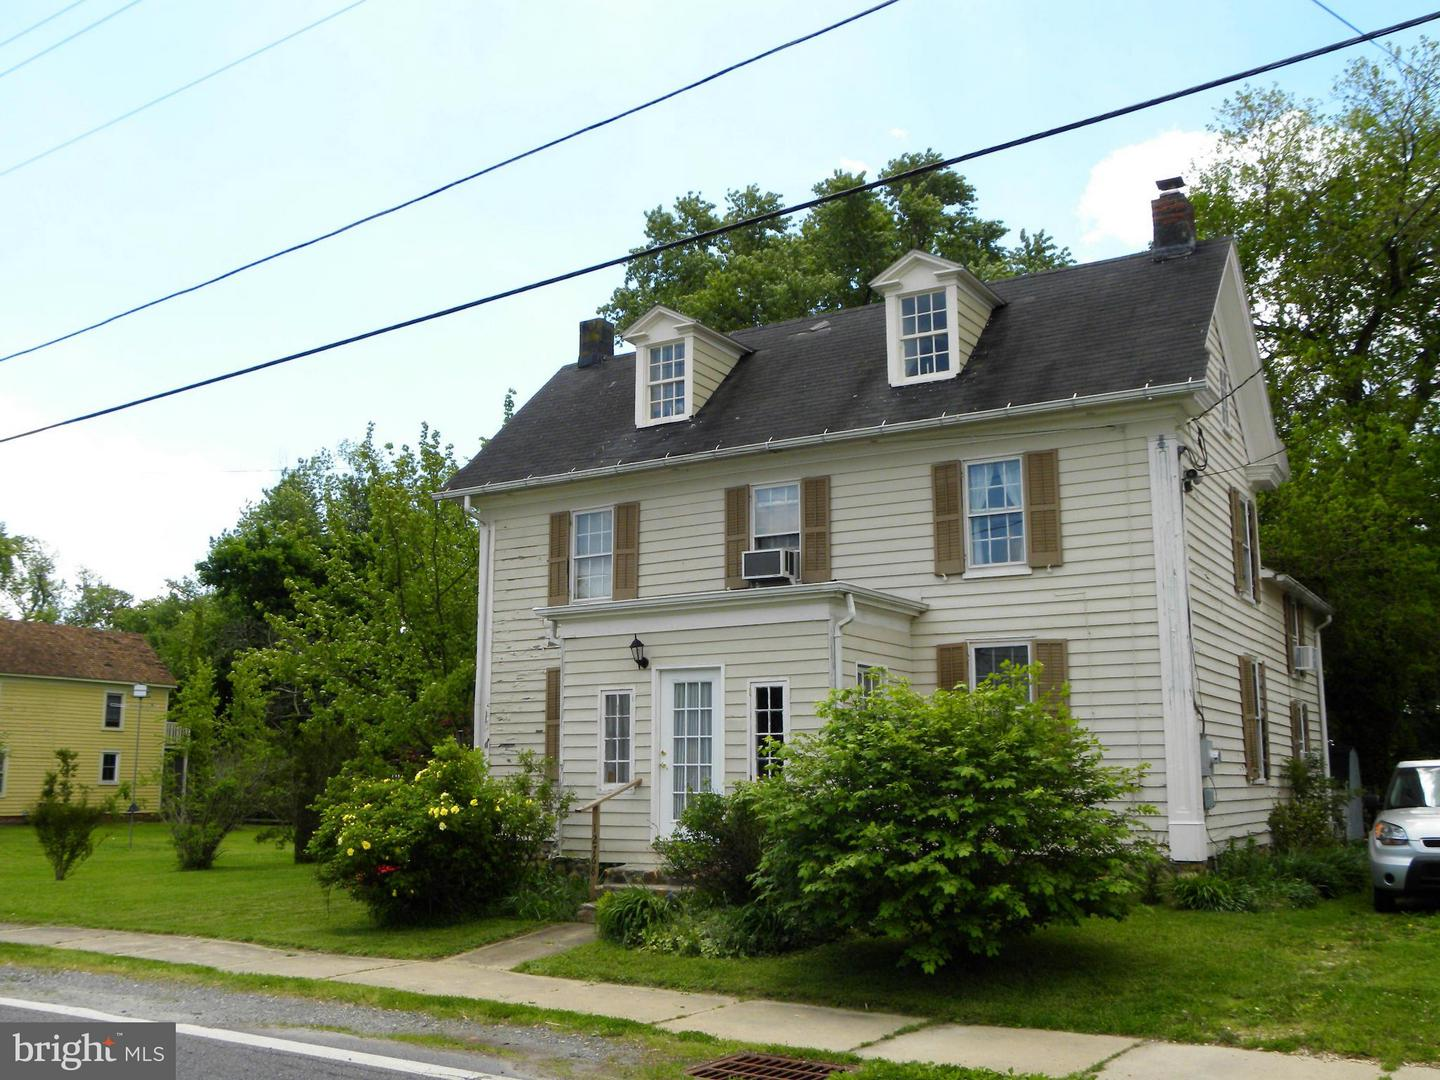 Single Family for Sale at 12768 Still Pond Rd Still Pond, Maryland 21667 United States